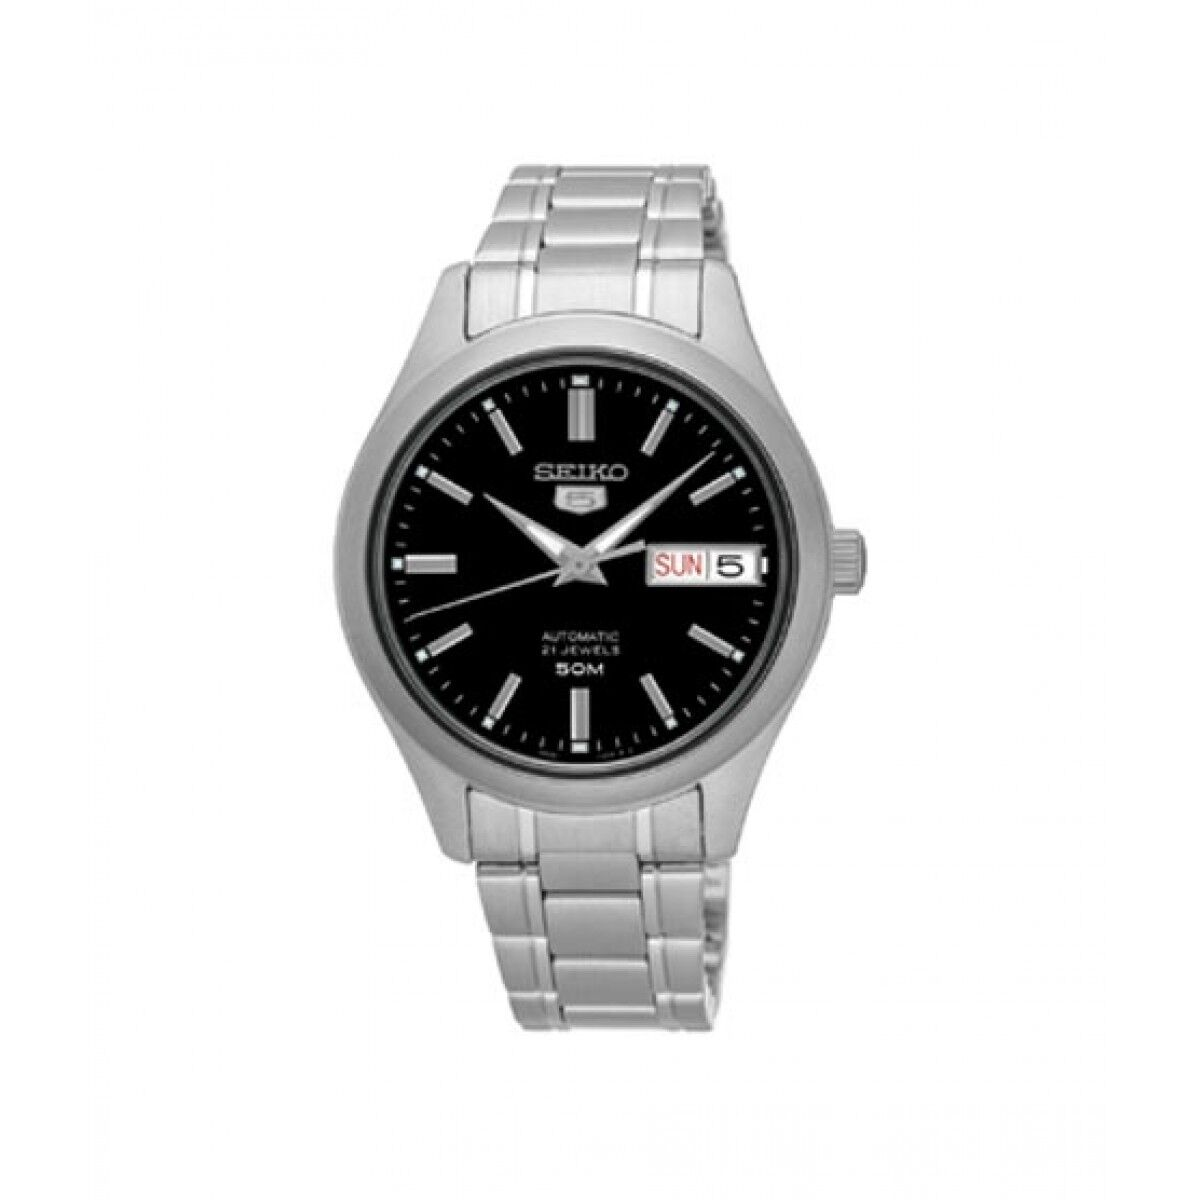 Seiko Classic Stainless Steel Men's Watch SIlver (SNK883K1)